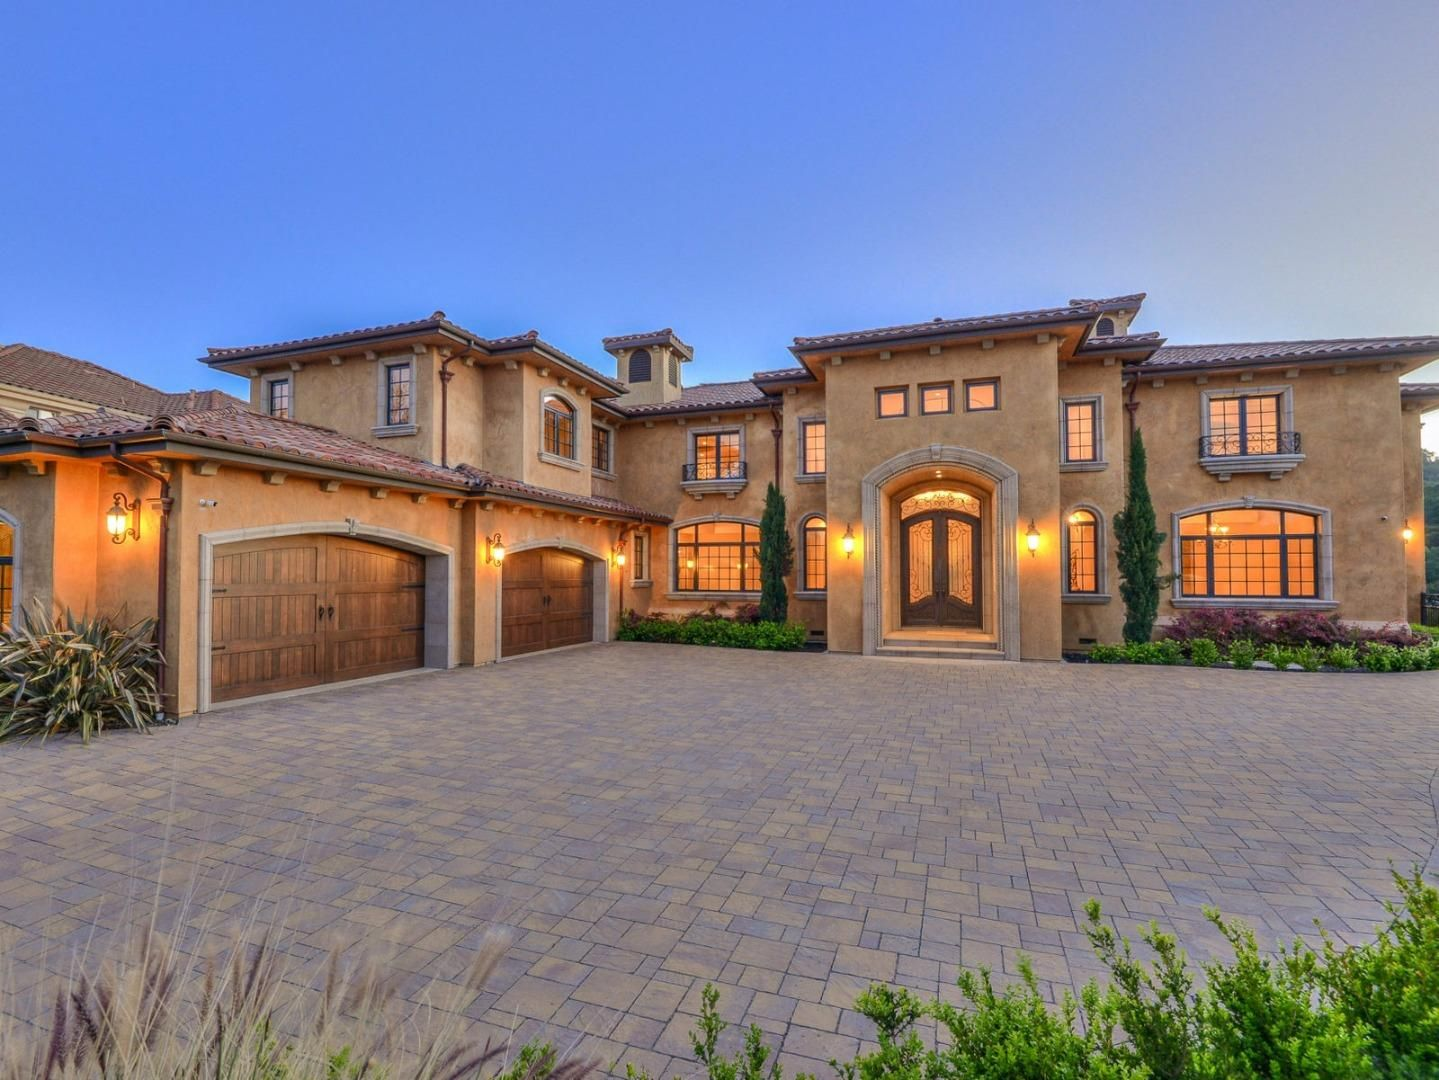 Luxury Bay Area Luxury Real Estate (With images) San